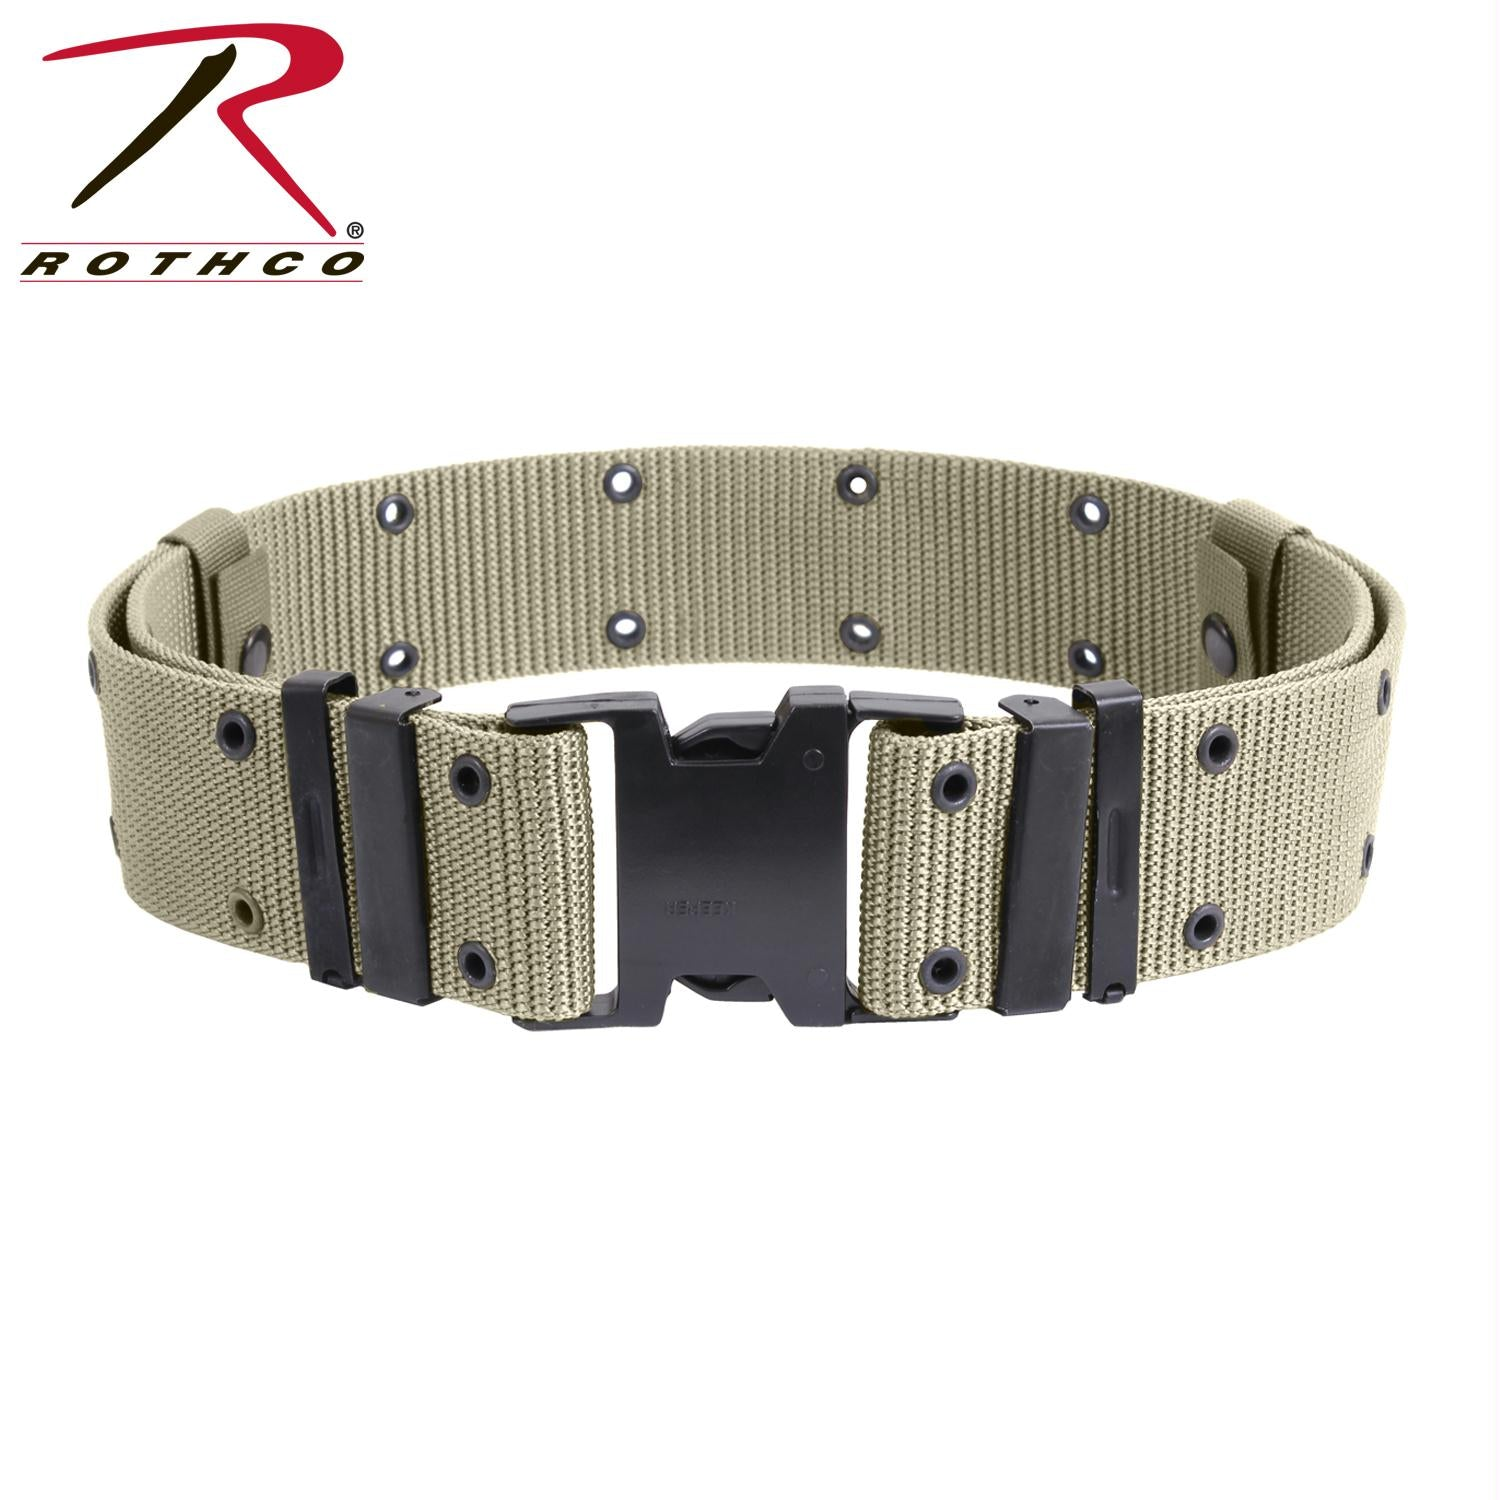 Rothco New Issue Marine Corps Style Quick Release Pistol Belts